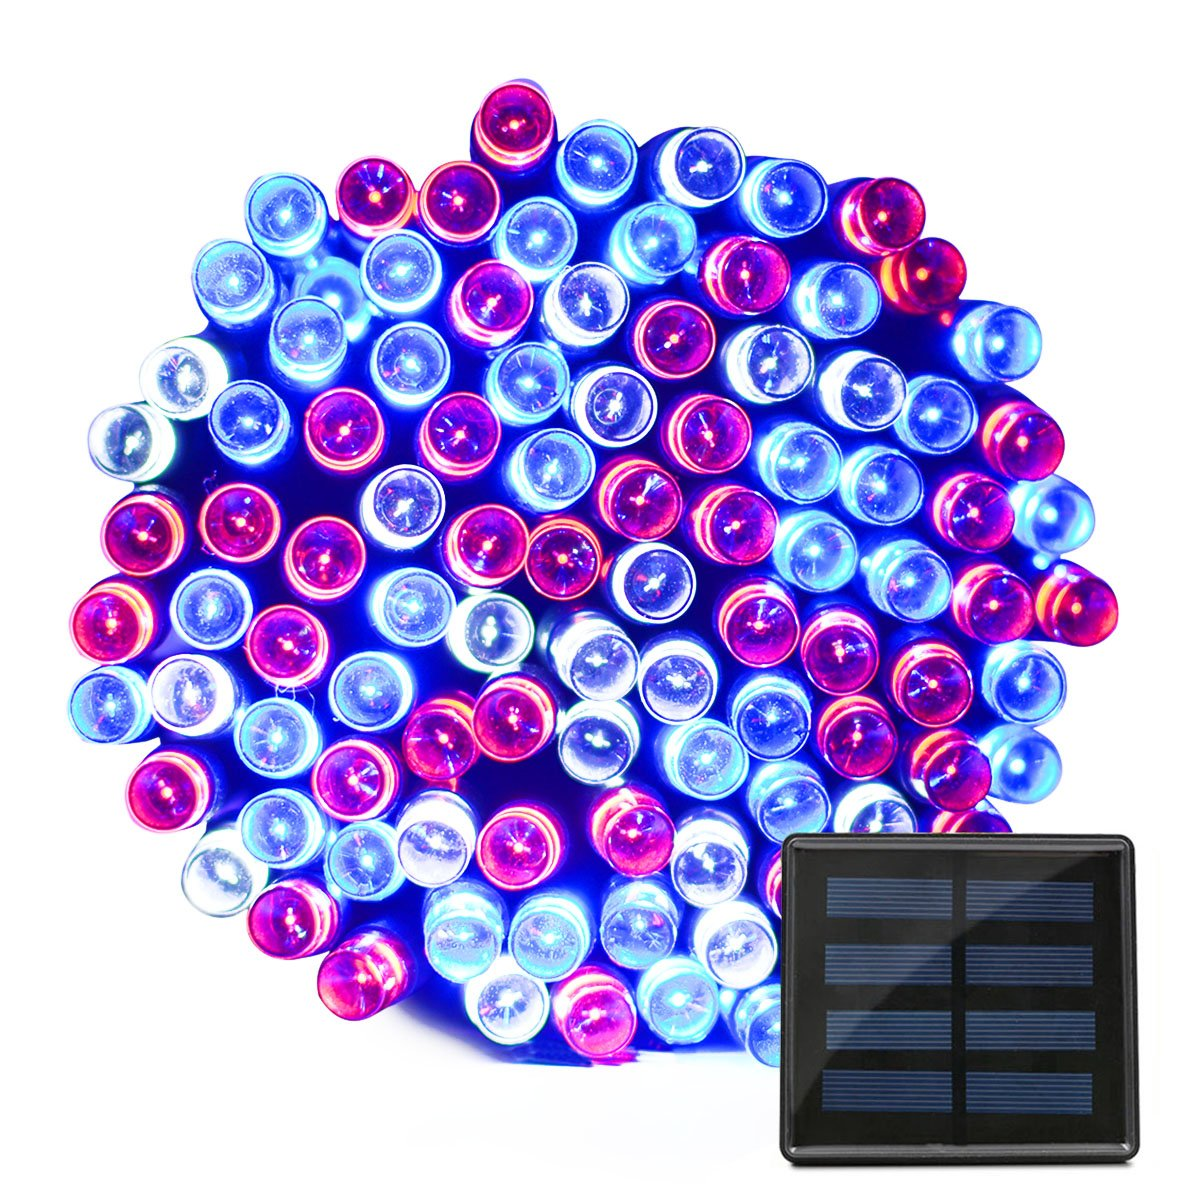 VMANOO Solar Lights 72ft 22m 200 LED 8 Modes July 4th Celebrate Light Patriotic Design with Red White Blue for Independence Day Party Xmas Decorations